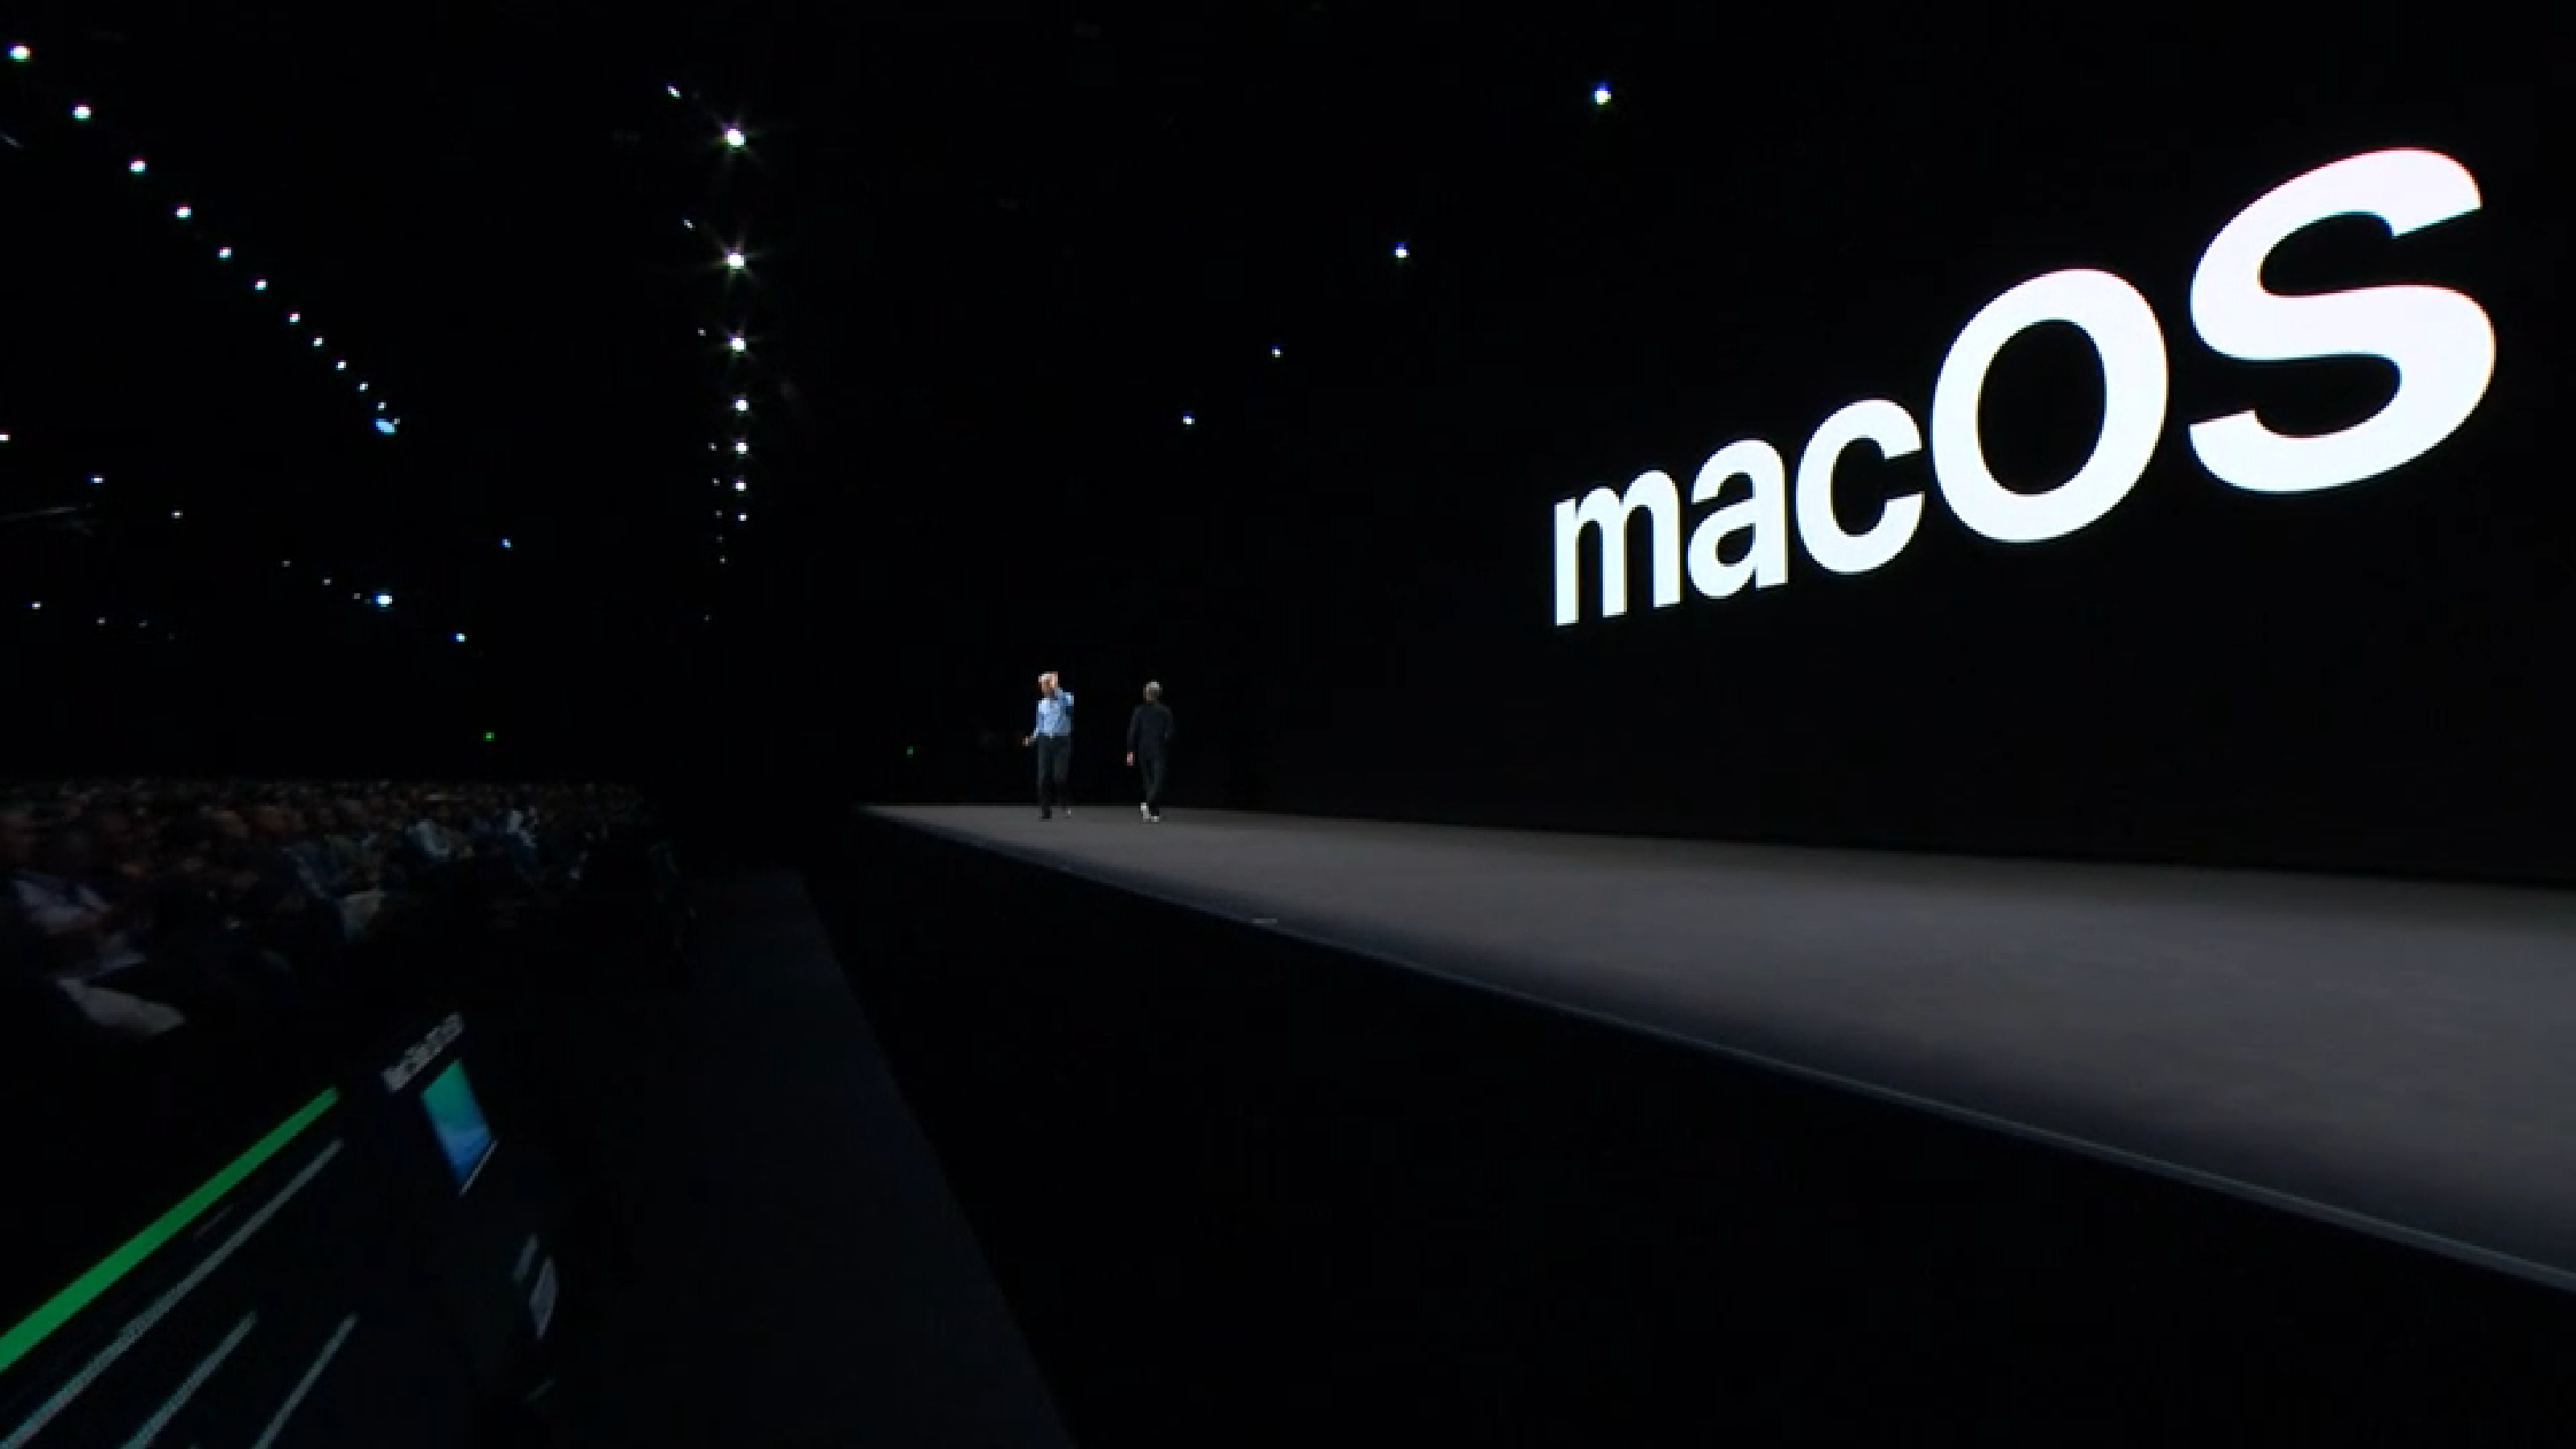 macOS 10.14 Mojave release date, news and features